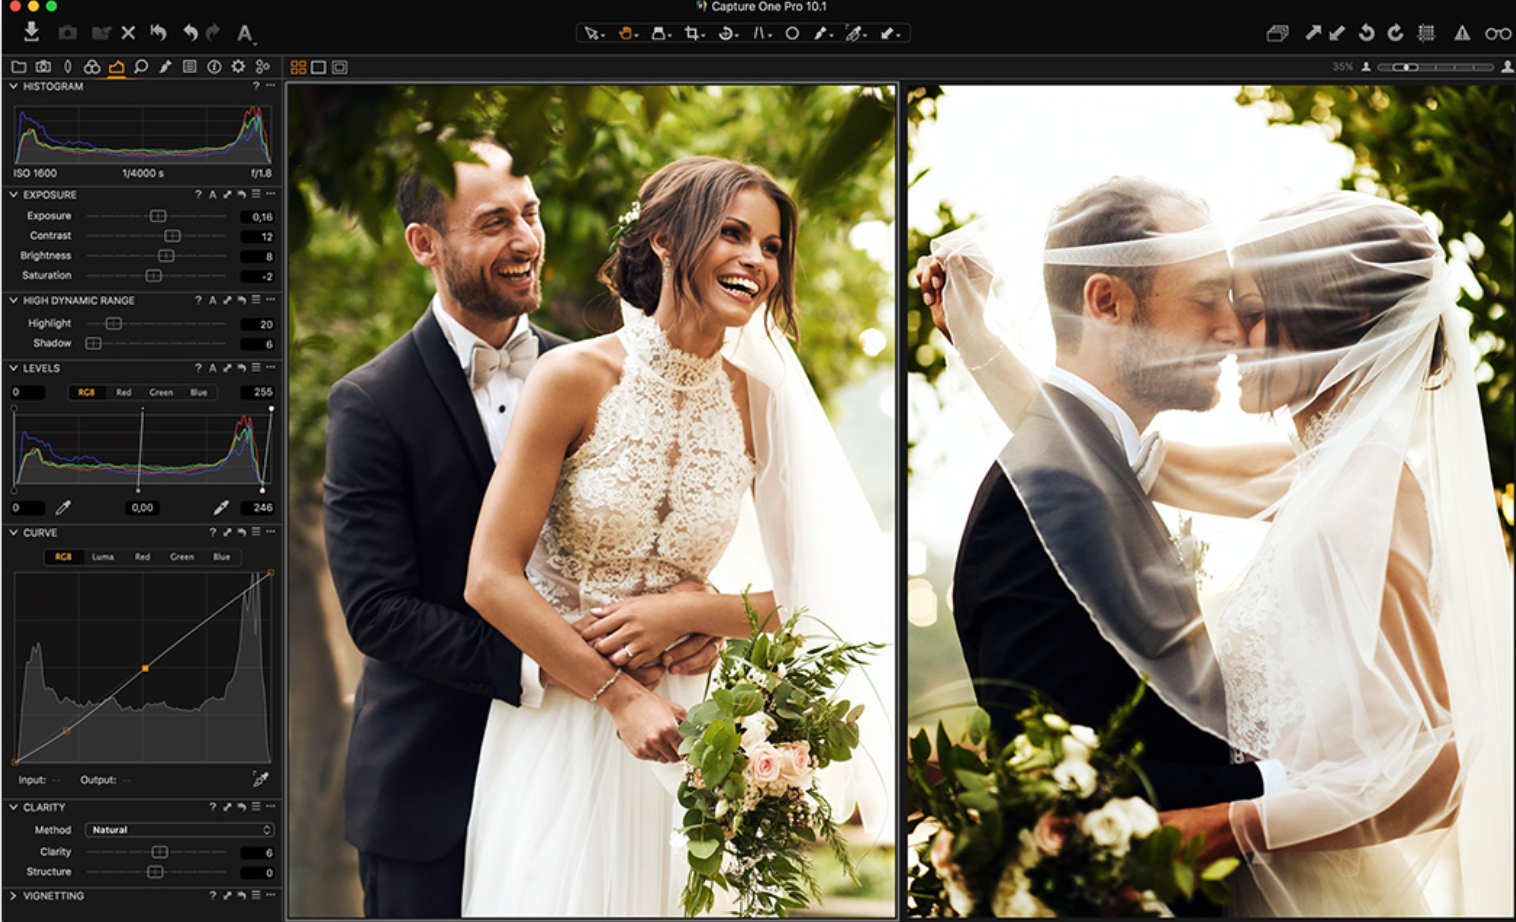 Capture One Pro 10.1 screenshot